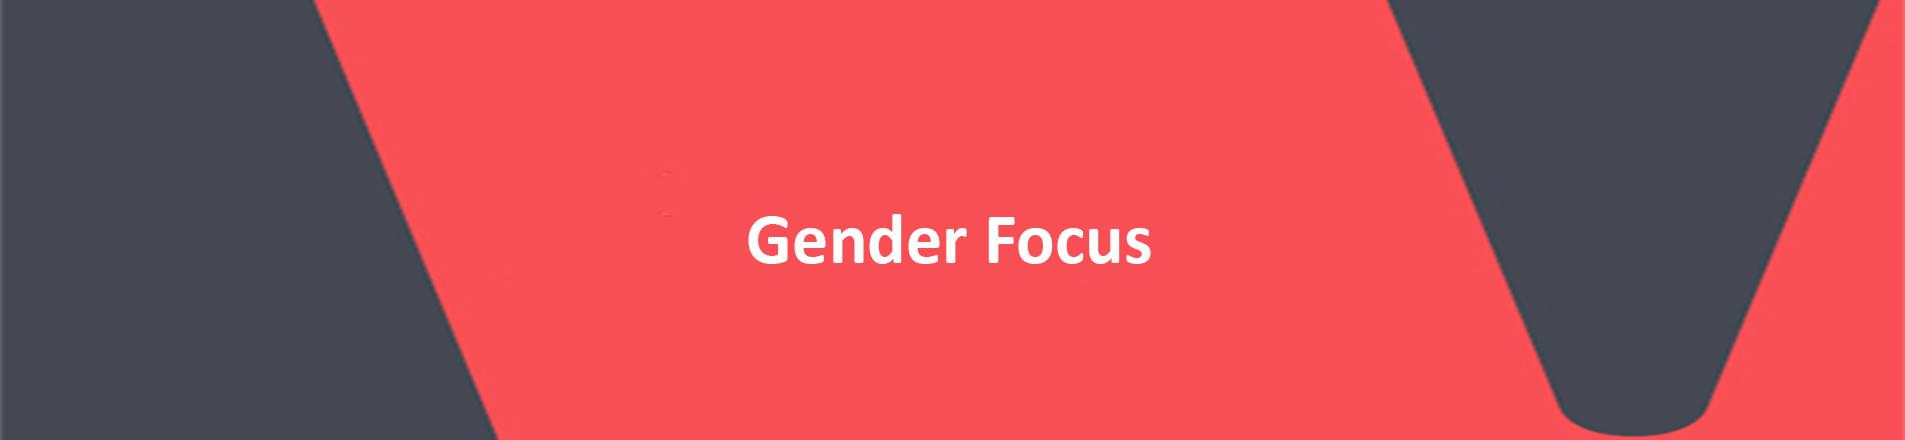 Image of the words gender focus on red background